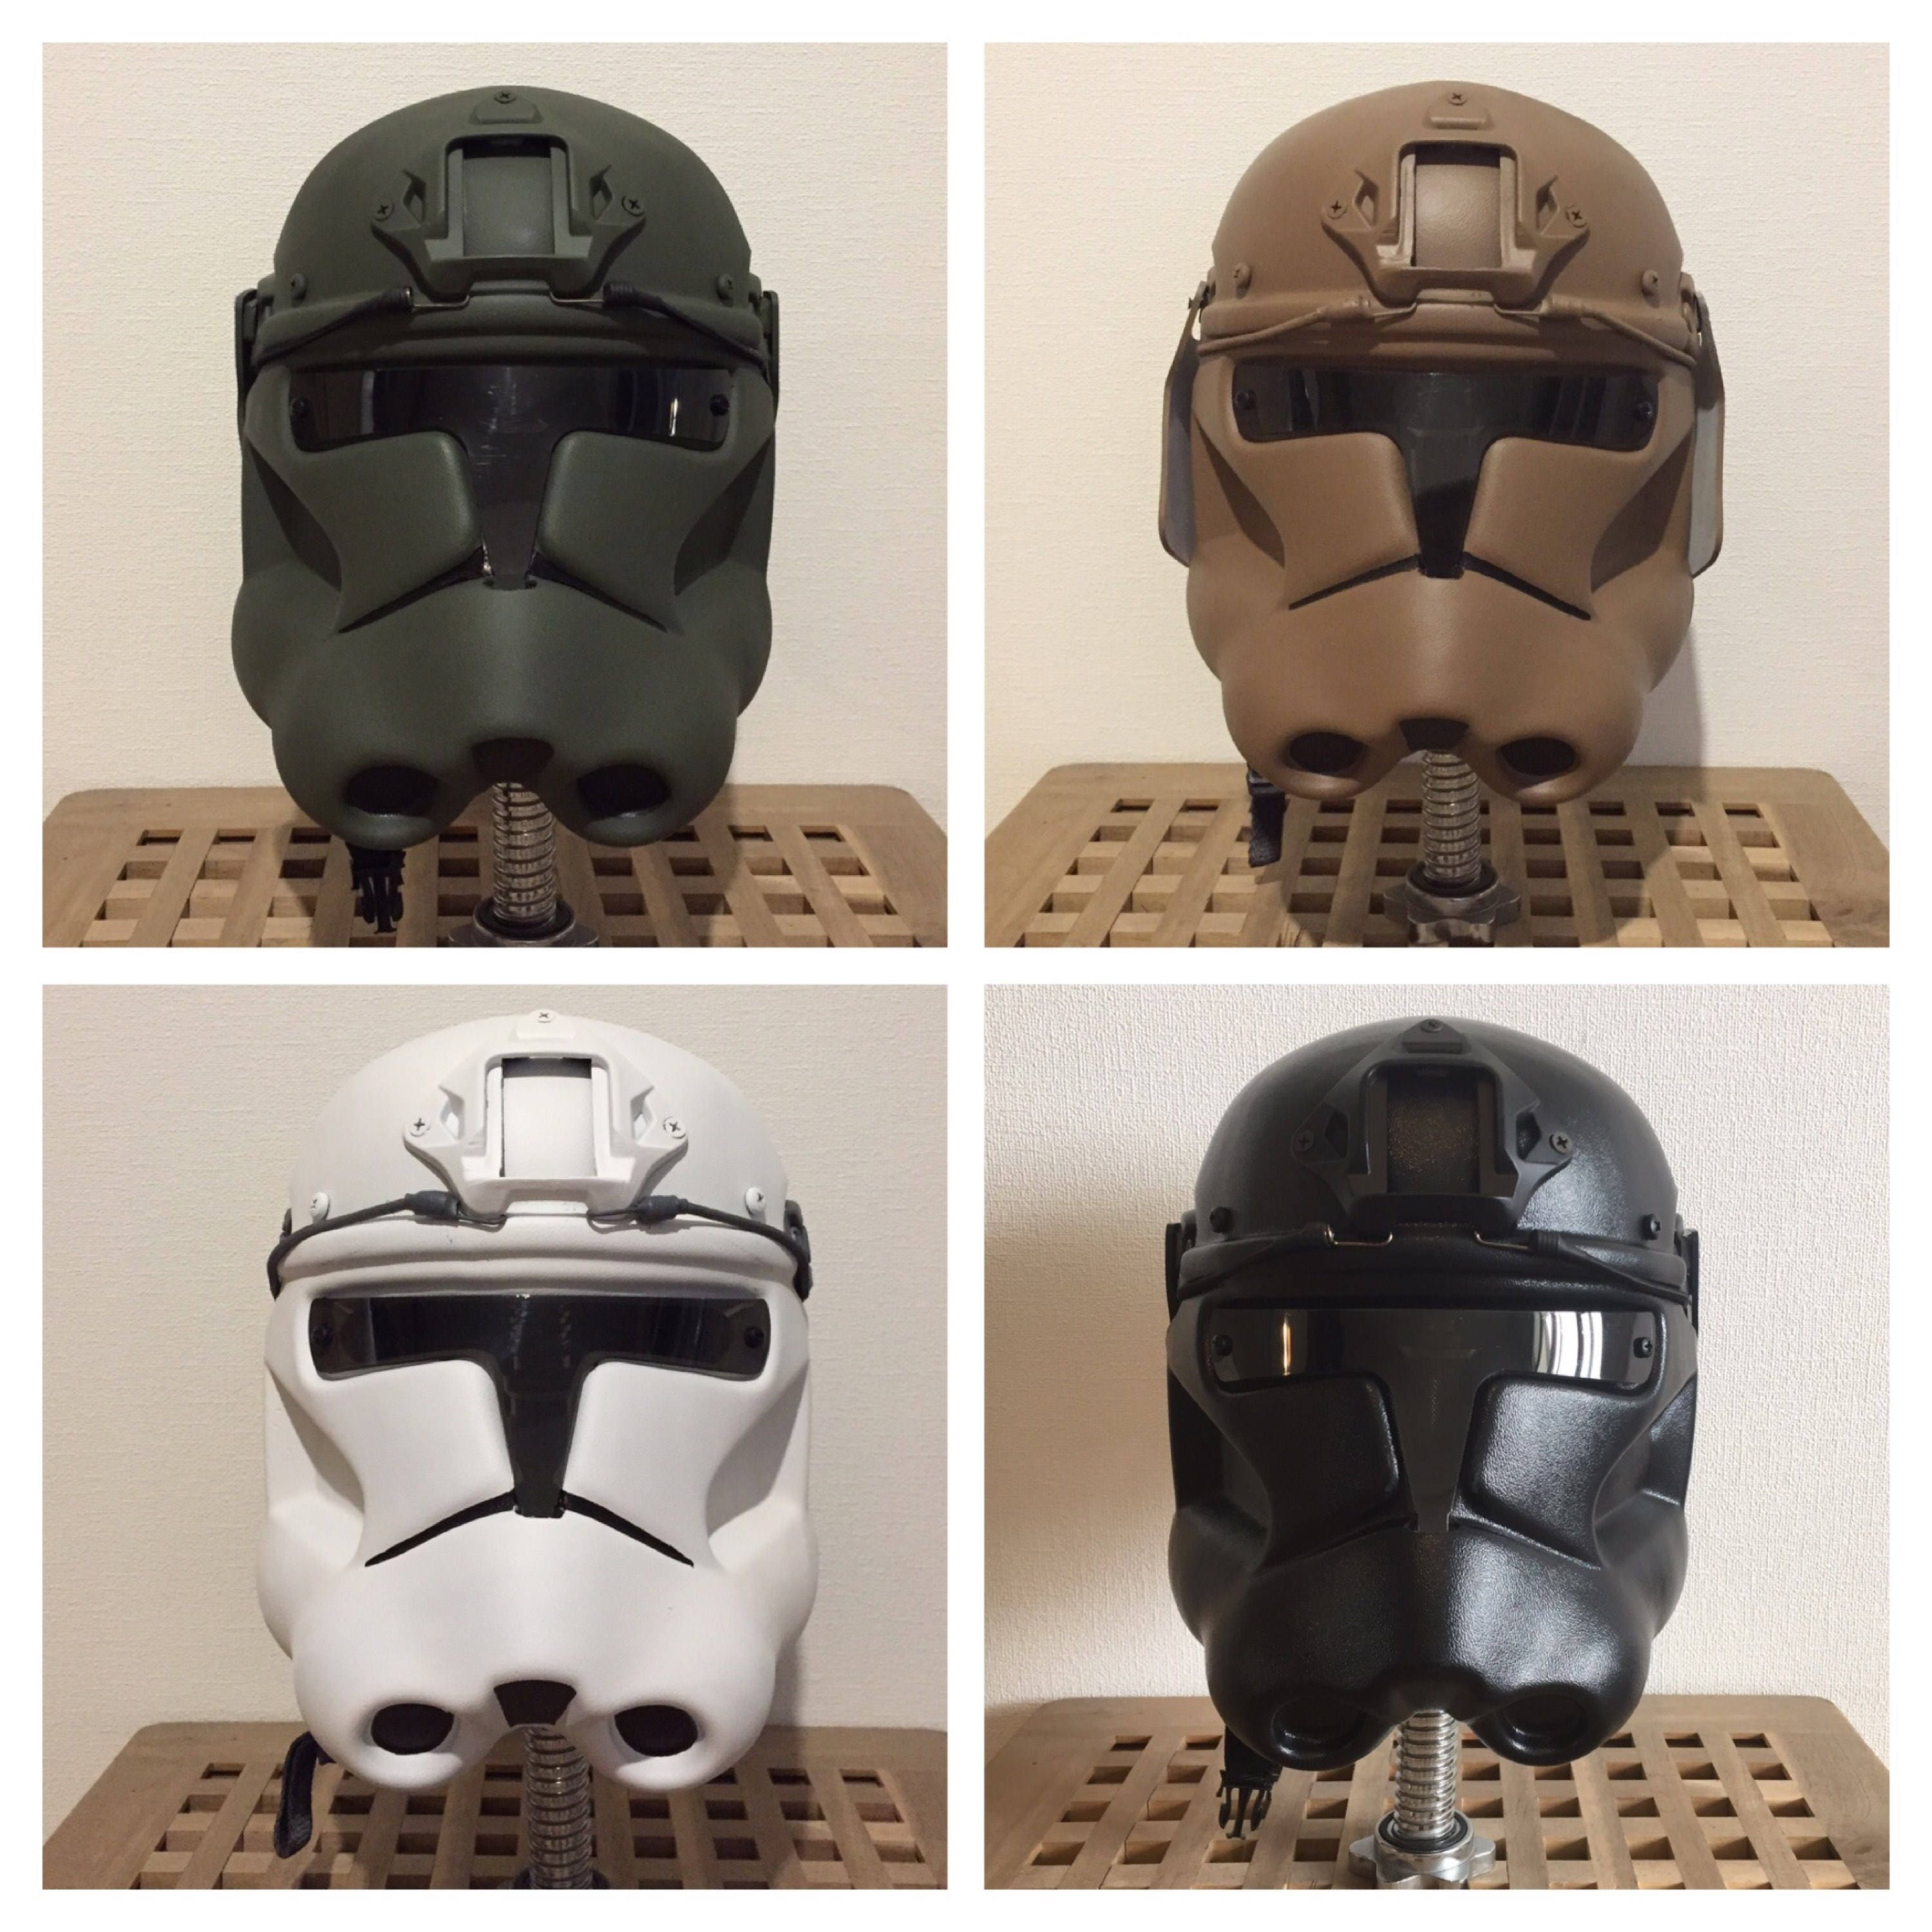 Clonetrooper Phase 2 Airsoft Paintball Helmet